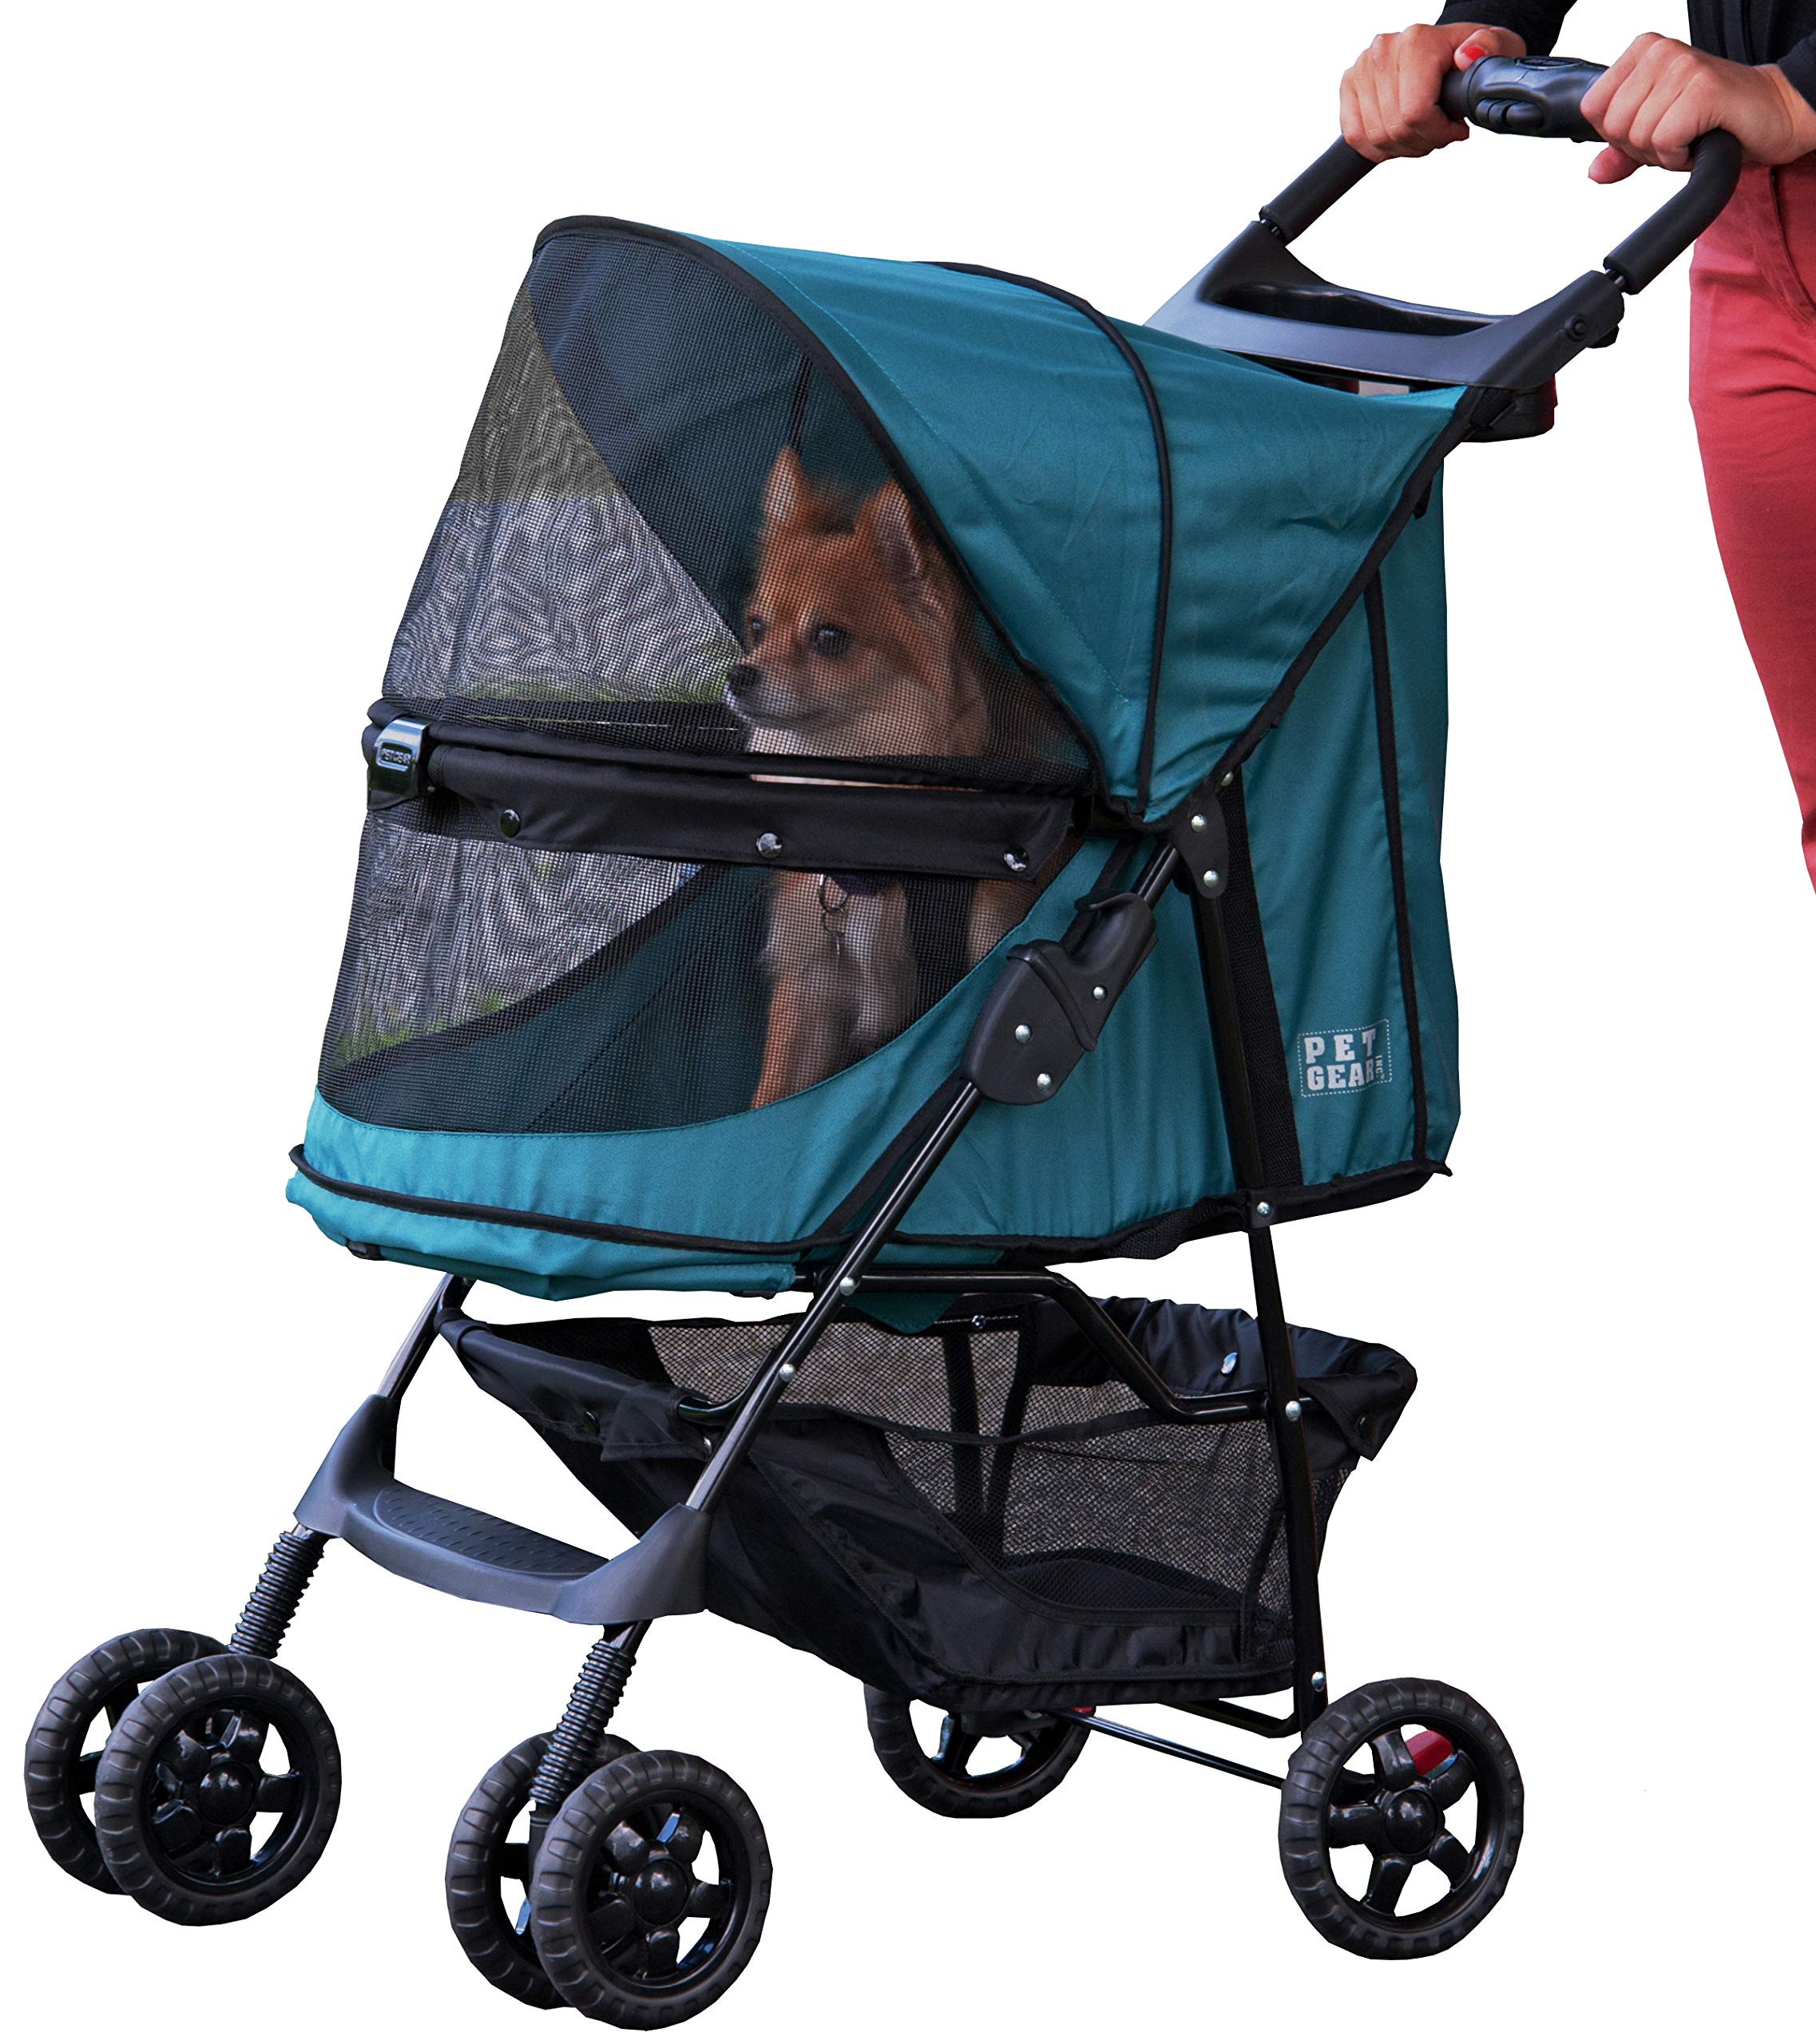 Pet Gear No-Zip Happy Trails Pet Stroller for Cats/Dogs, Zipperless Entry, Easy Fold with Removable Liner, Storage Basket + Cup Holder by Pet Gear